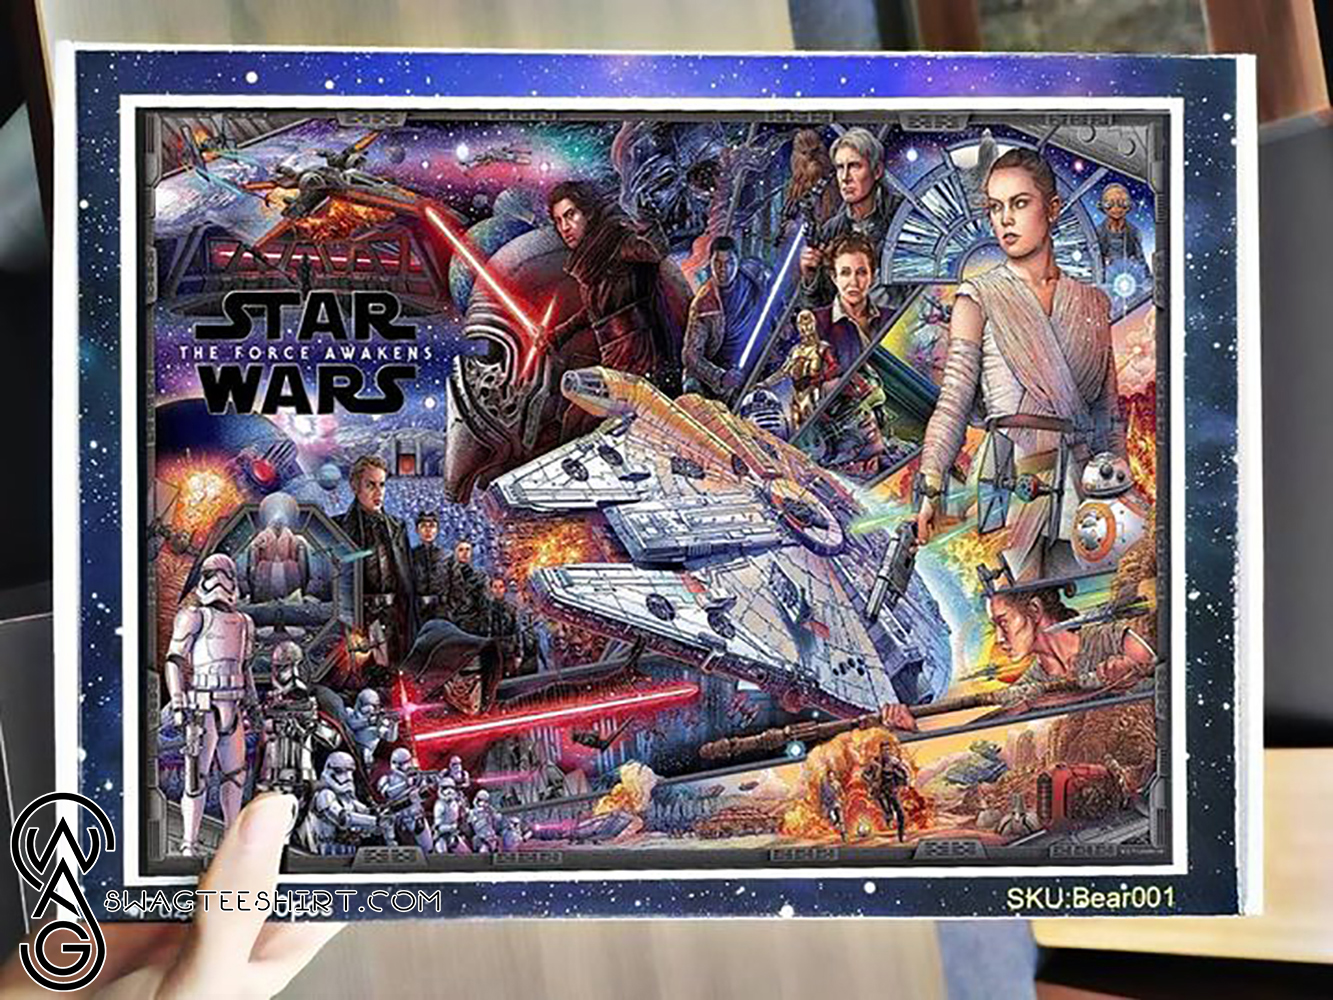 Star wars the force awakens jigsaw puzzle - maria